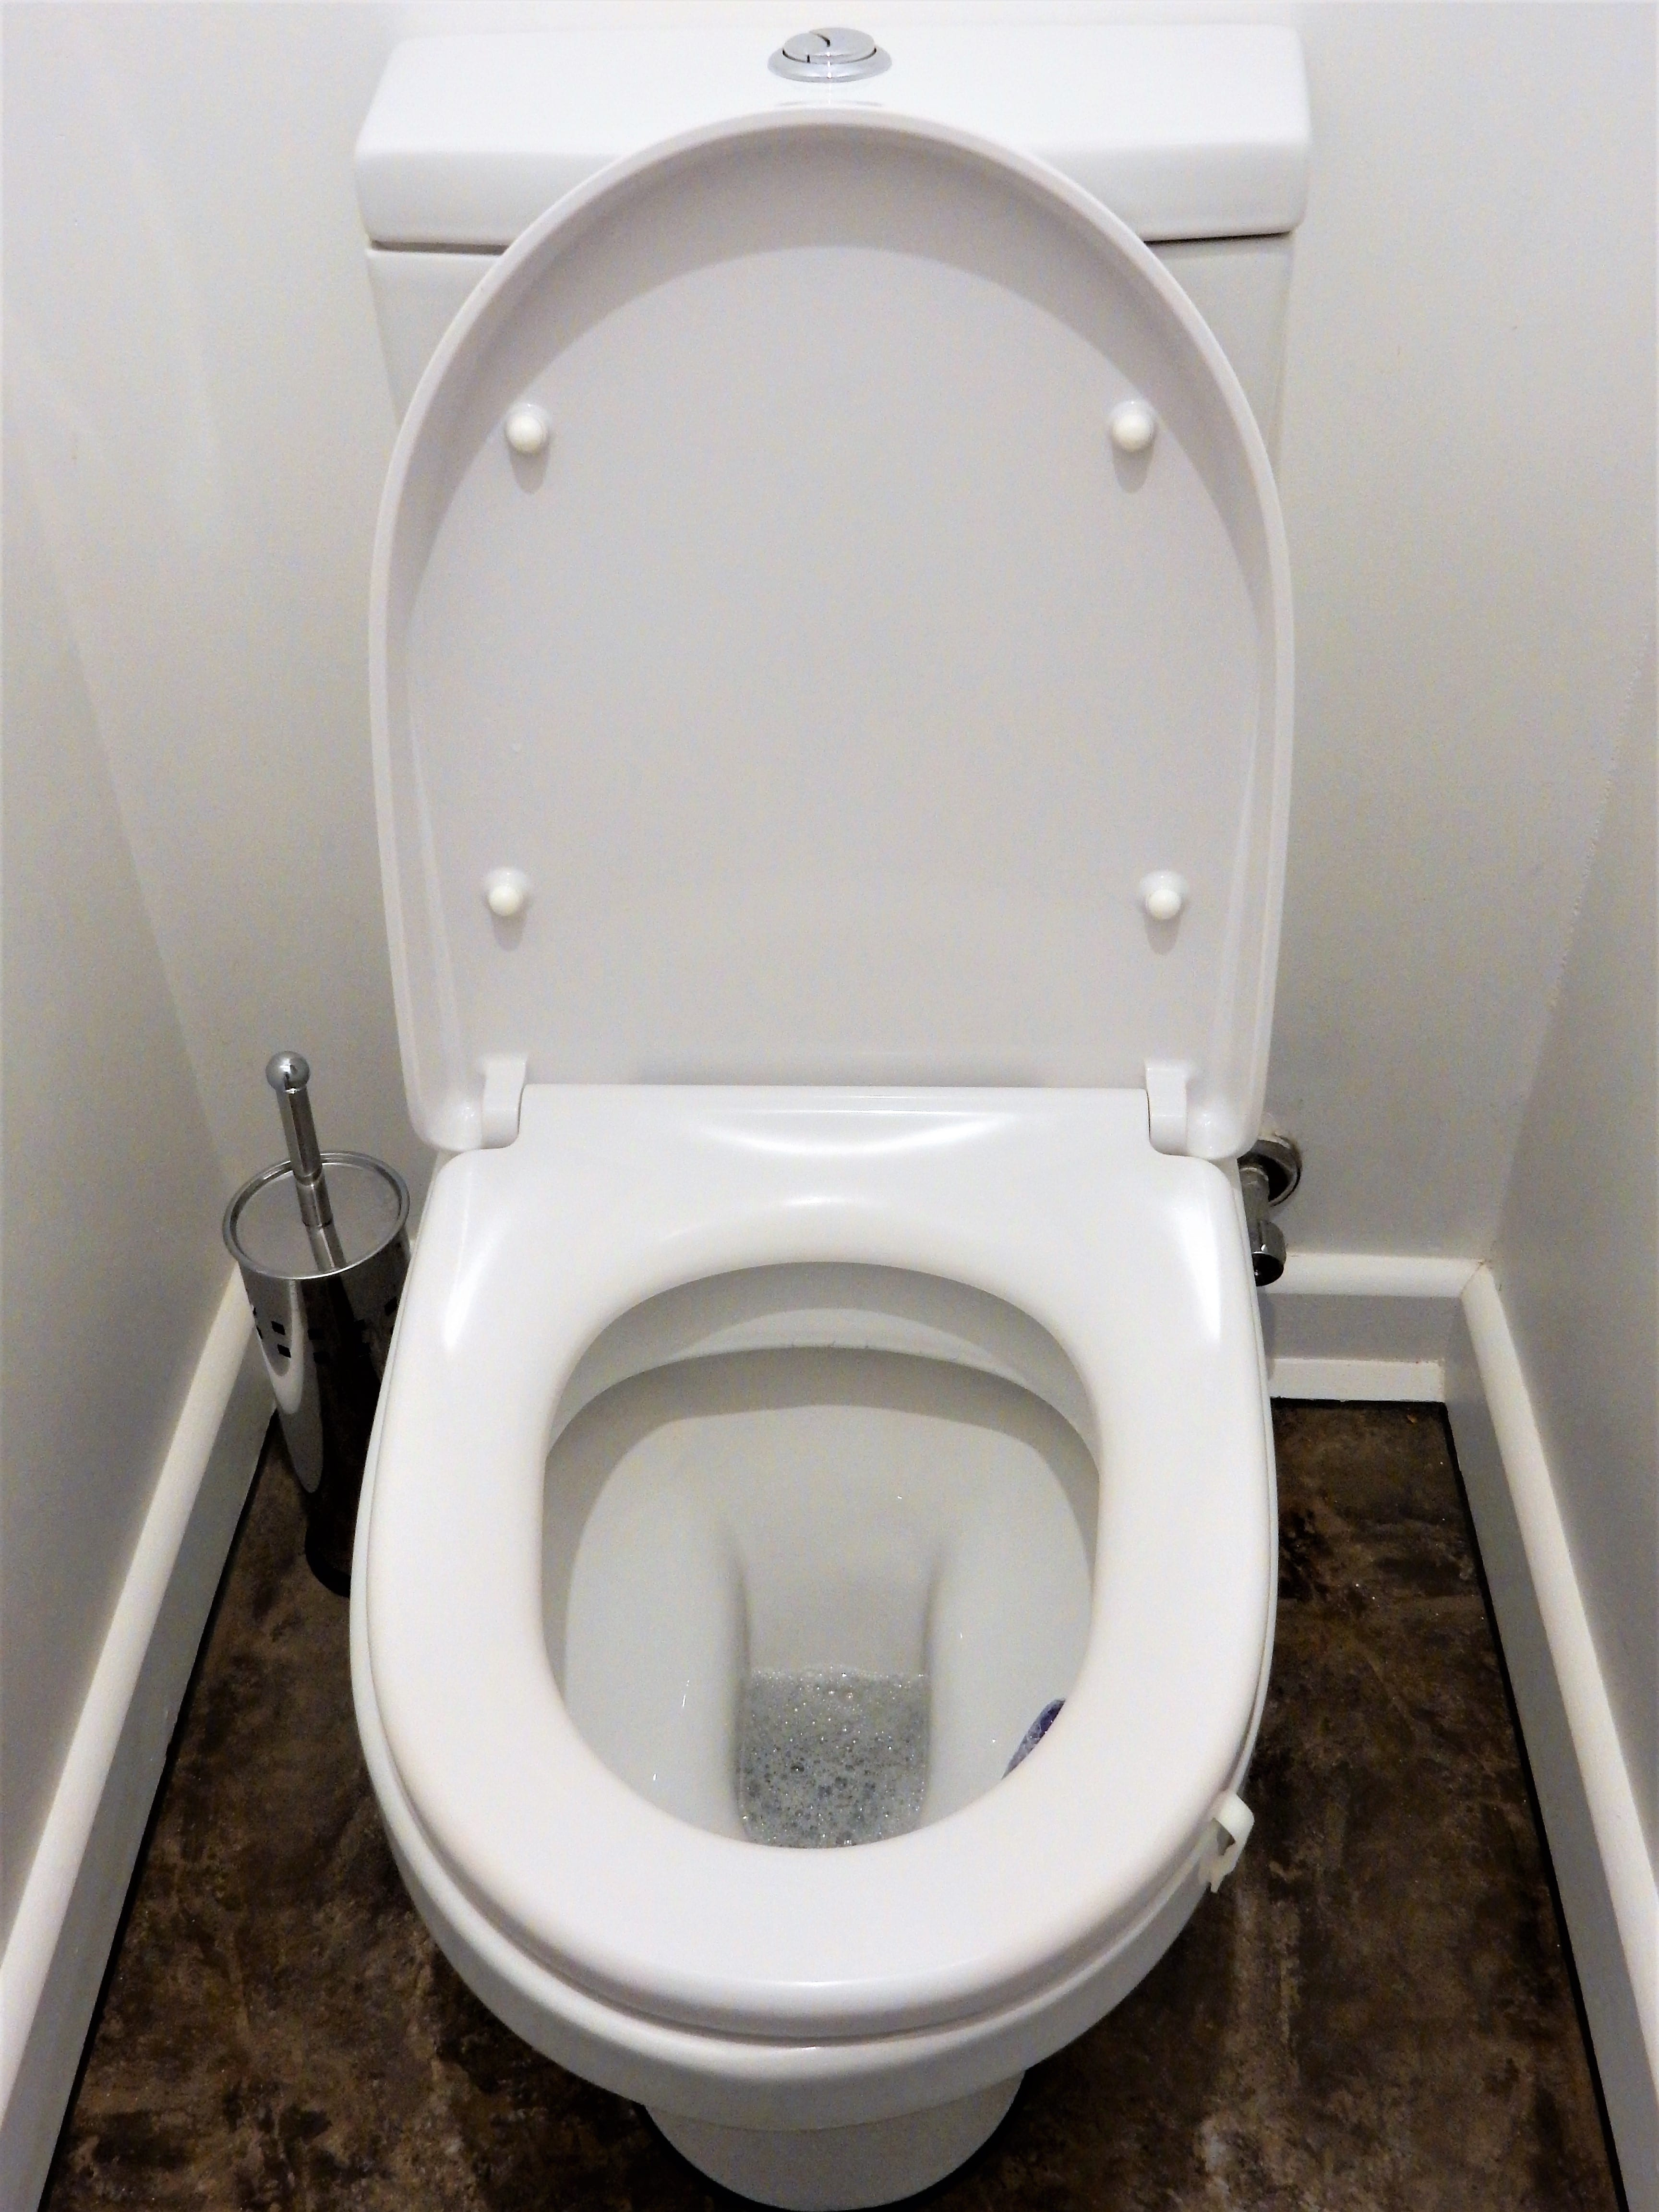 The Crafter S Guide To A Sparkling Clean Toilet With